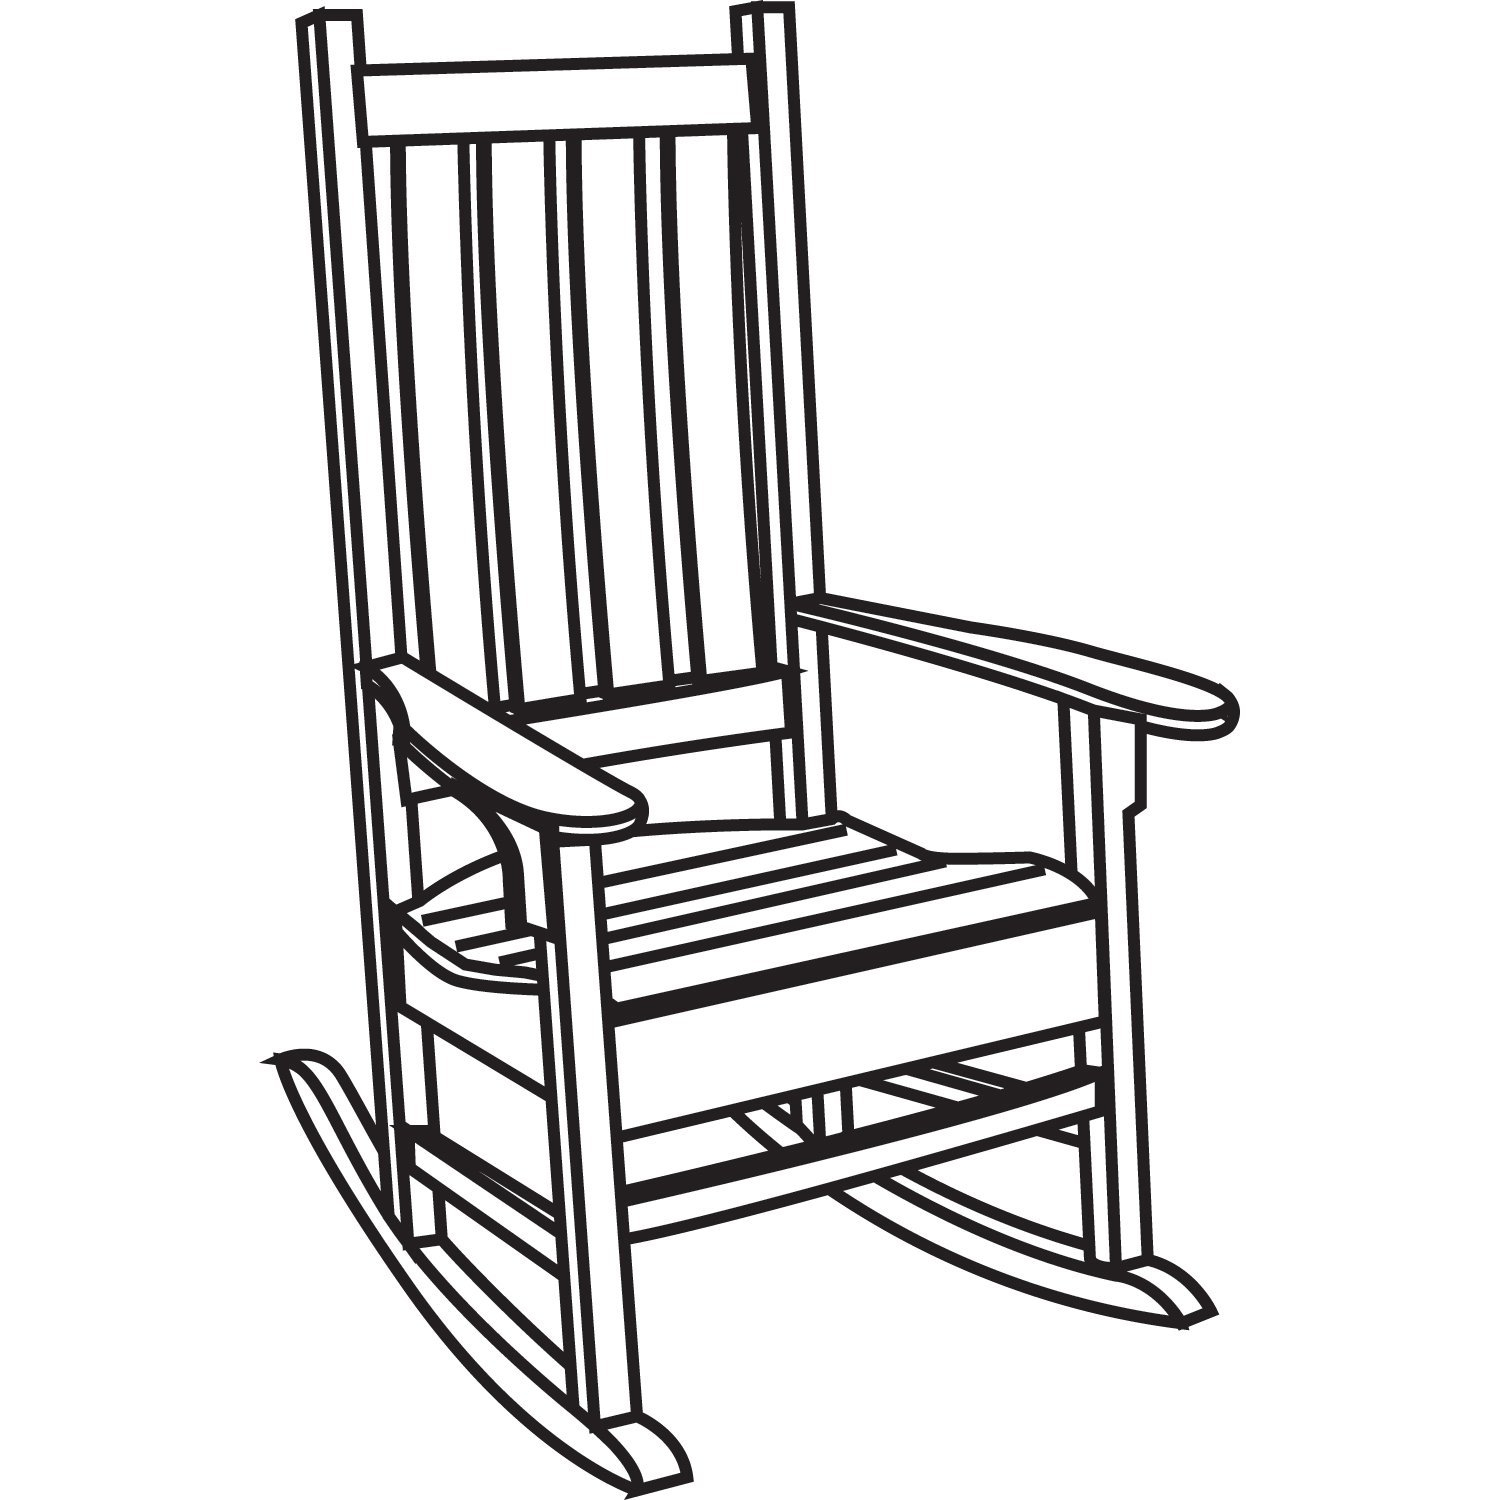 Two lines of chairs clipart banner black and white library Painting Clipart Black And White | Free download best ... banner black and white library